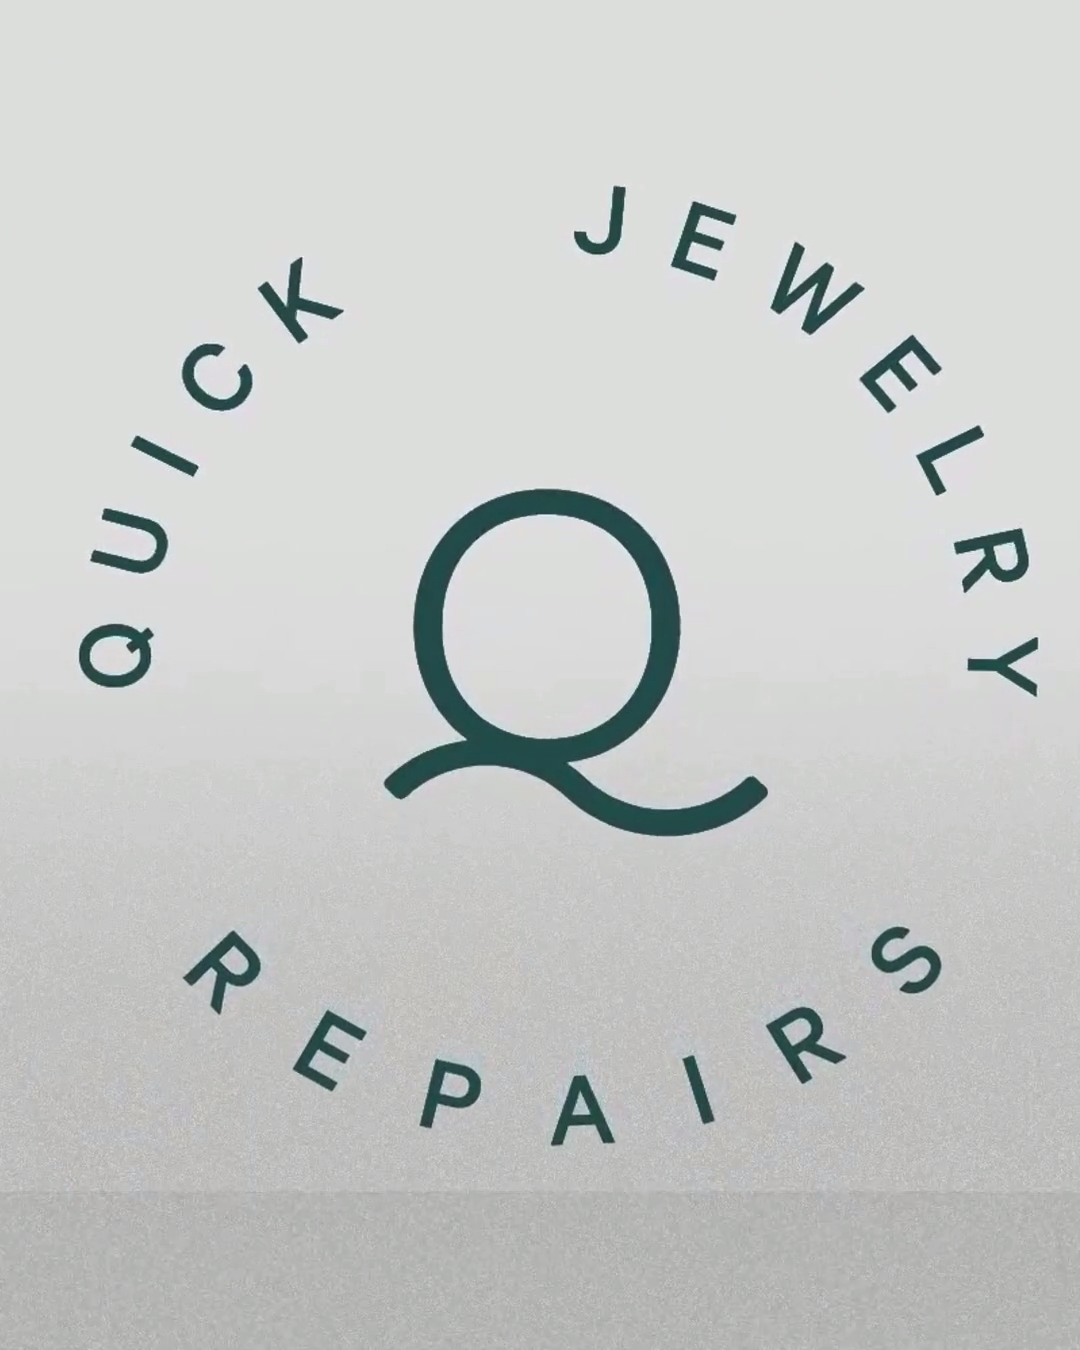 QJR_How it works